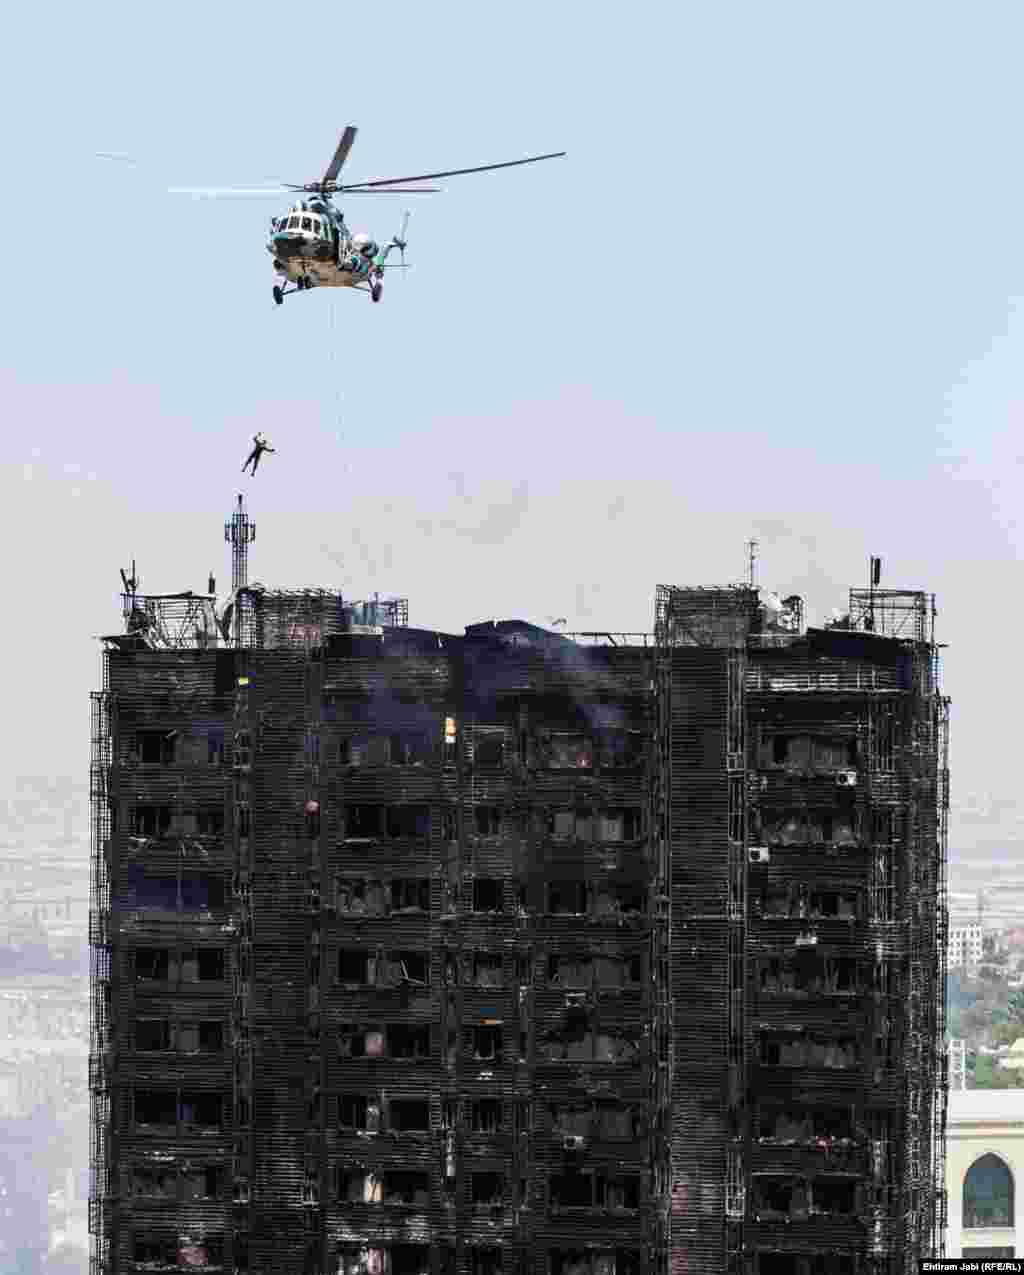 A rescue worker abseils from a helicopter during rescue attempts at a large fire in a high-rise apartment building in Baku. At least 15 people died in the blaze. (Ehtiram Jabi/RFE/RL)